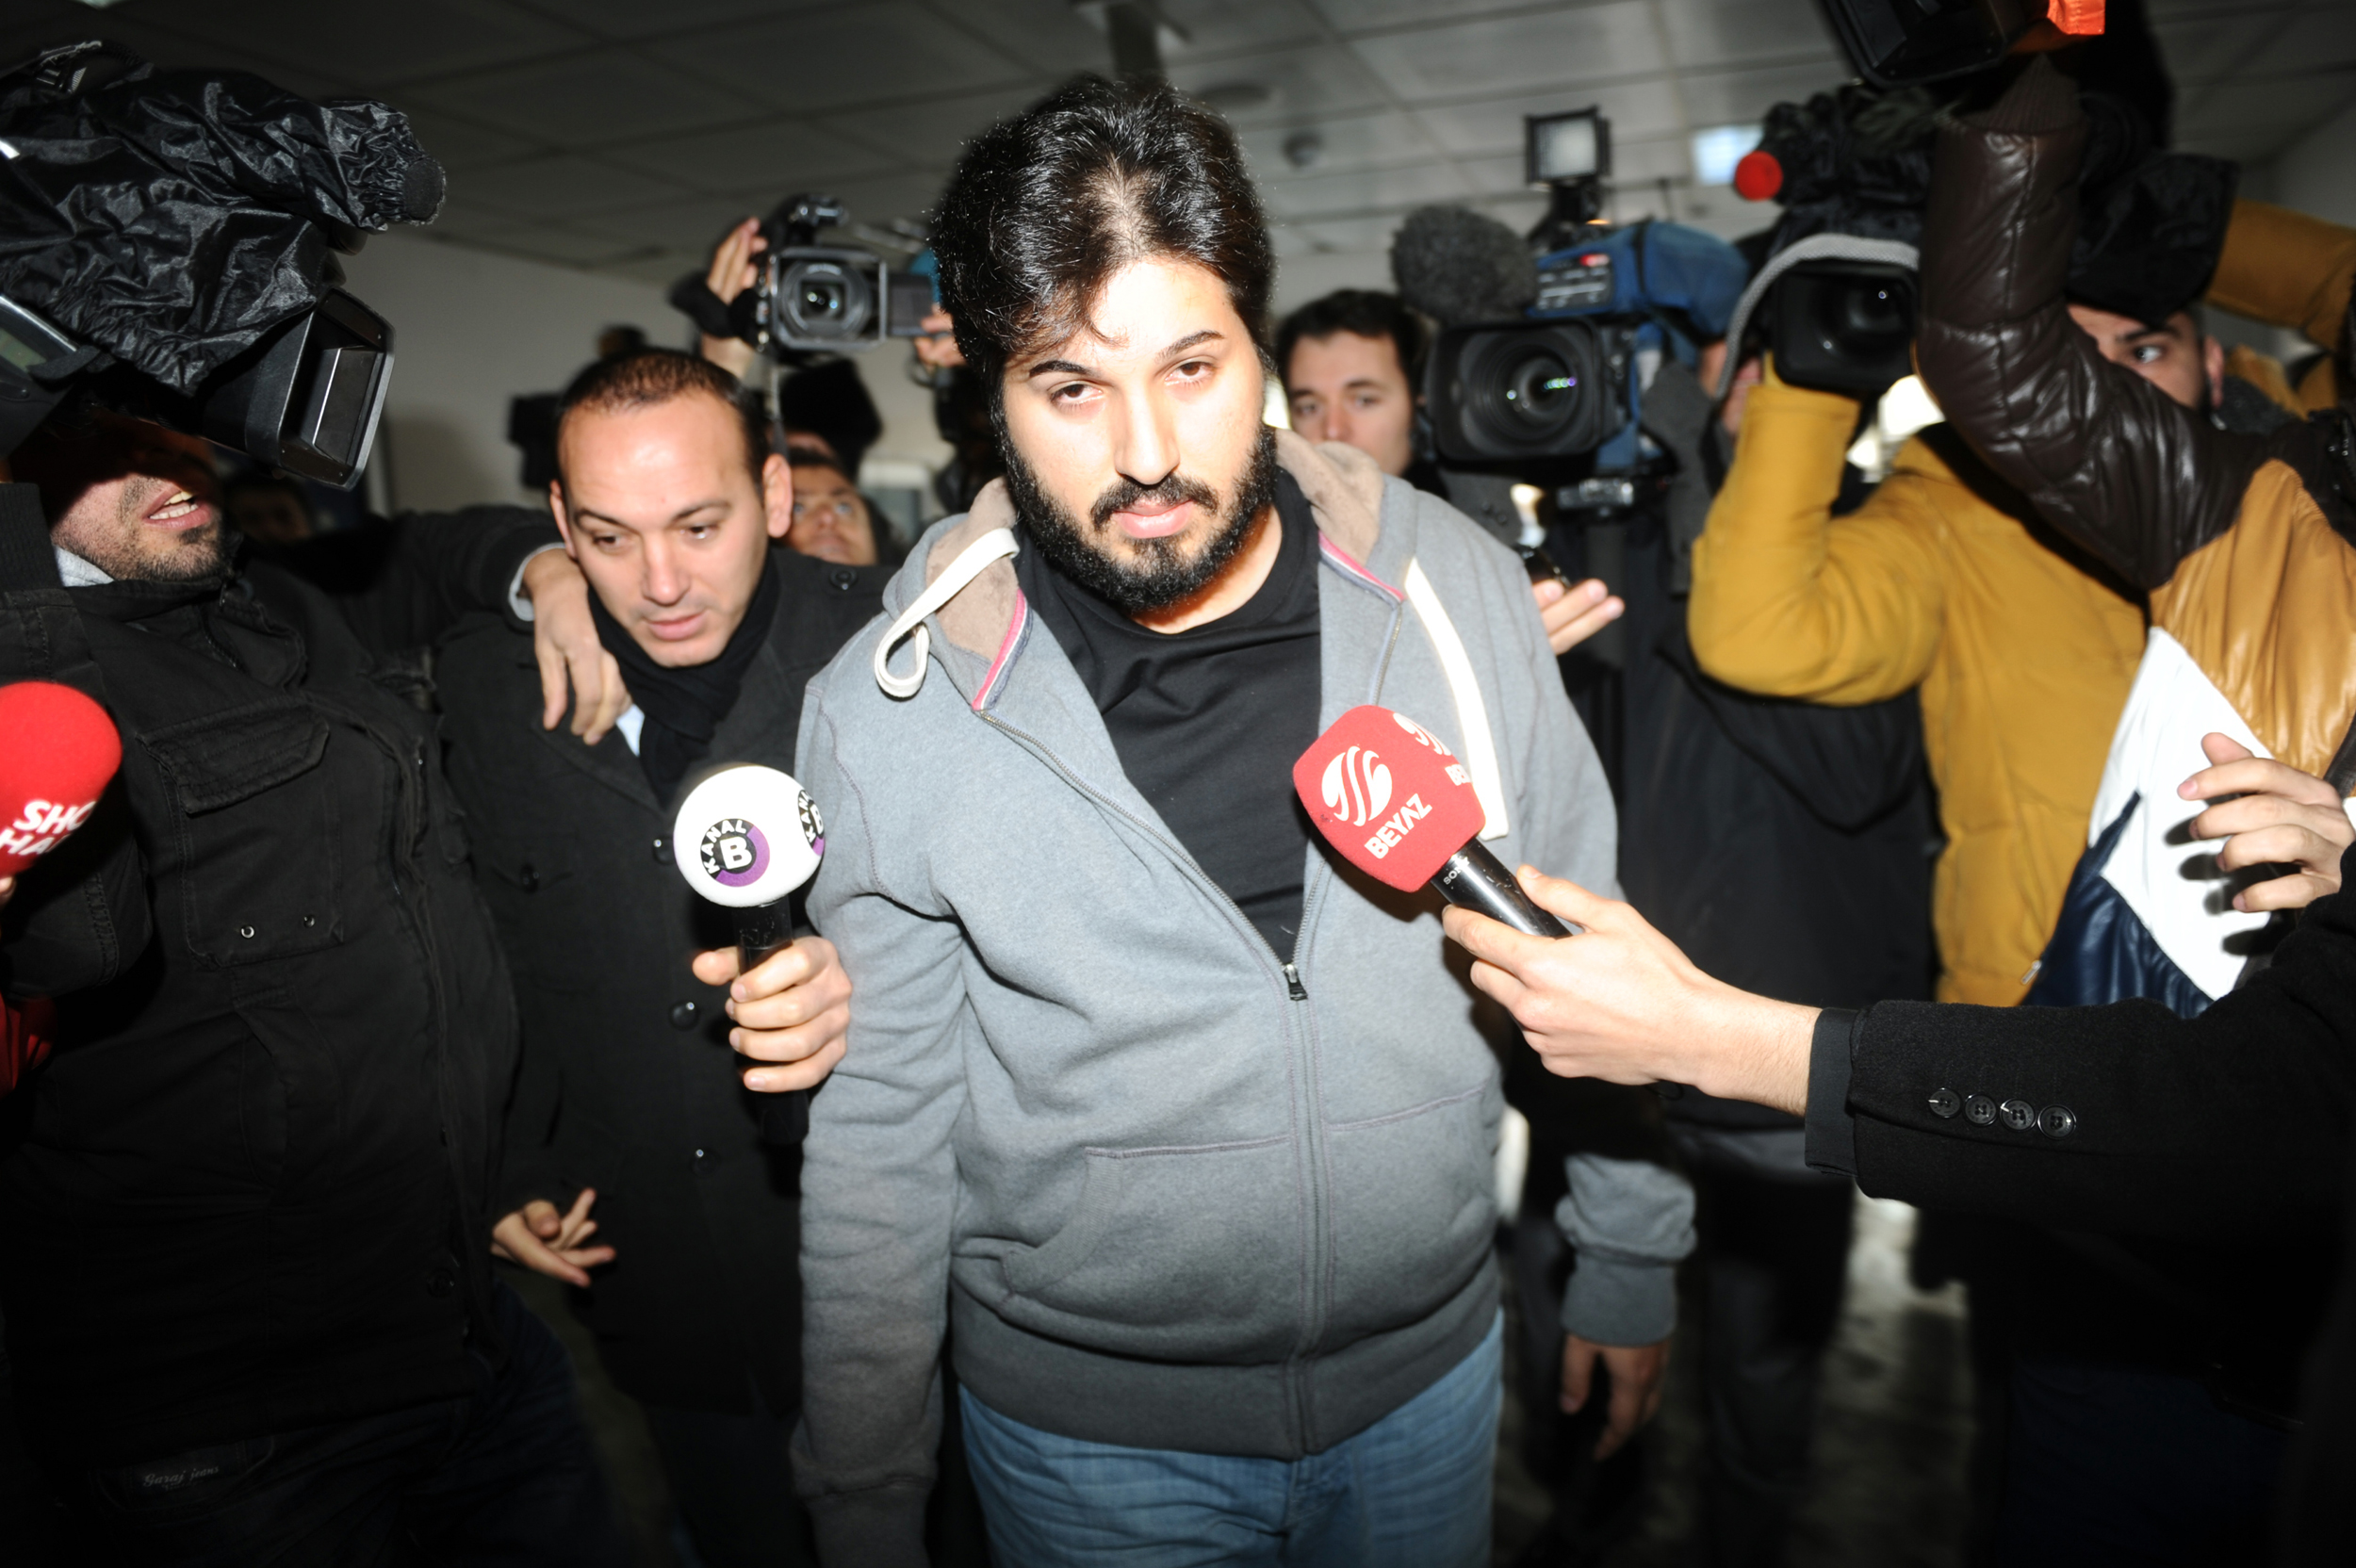 nbcnews.com - What does Reza Zarrab know? Turkish gold trader avoids trial for now